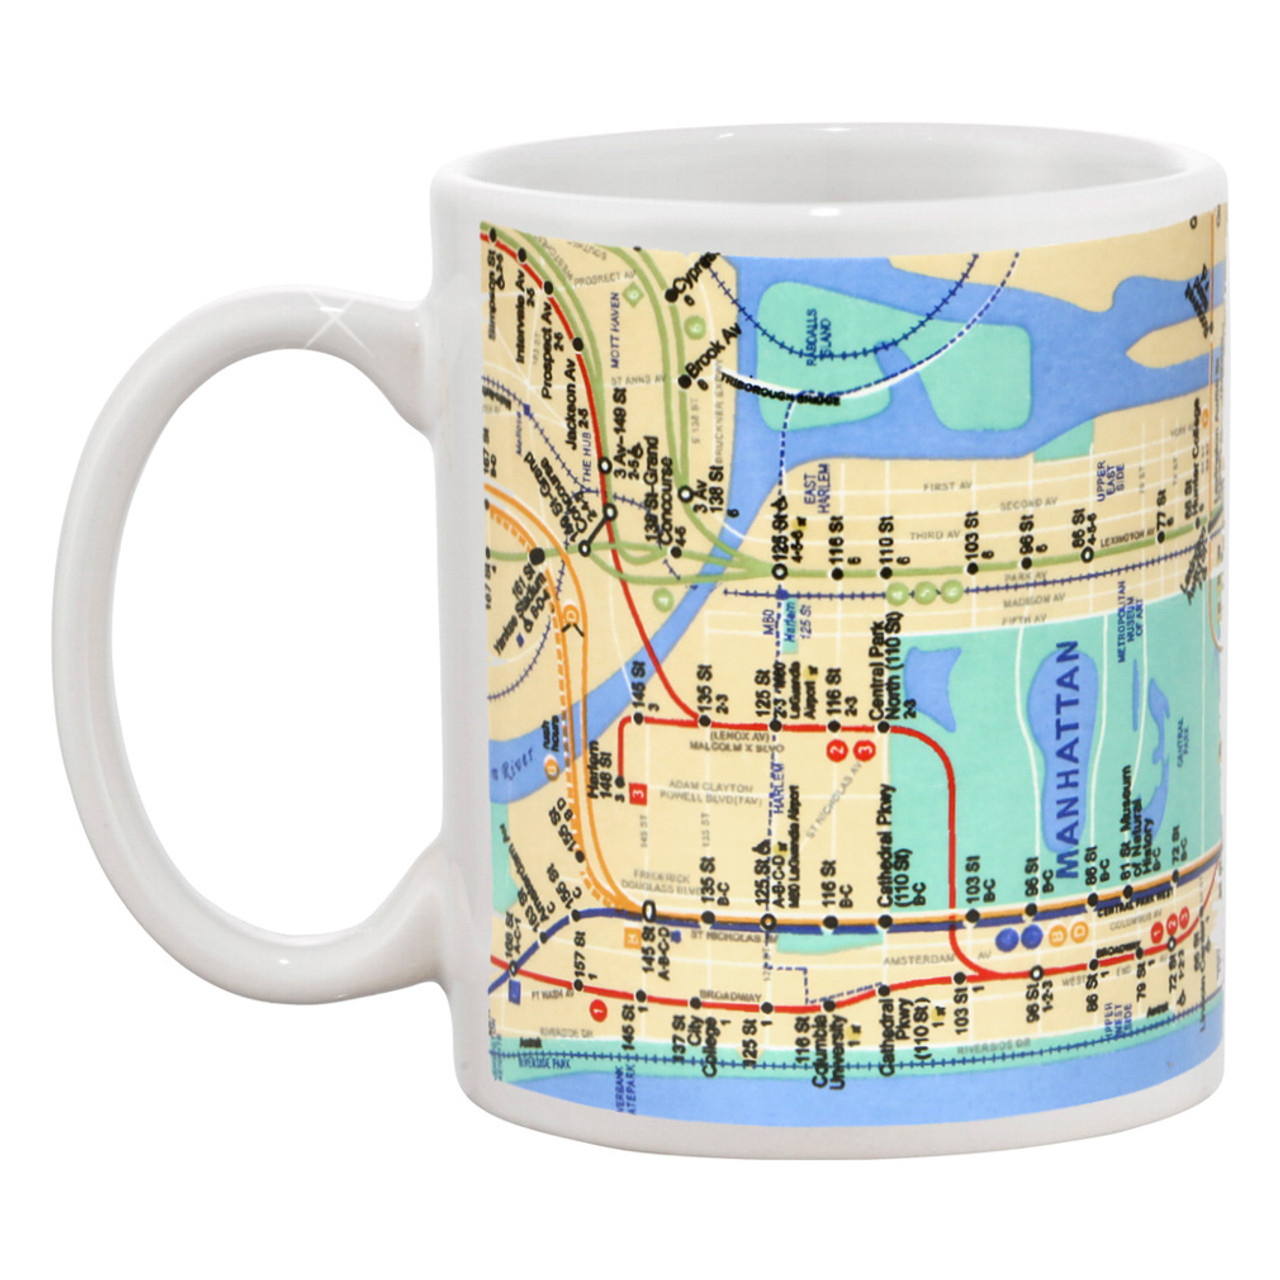 Manhattan Mta Mini Subway Map And Address Finder.New York City Mta Subway Map Mug